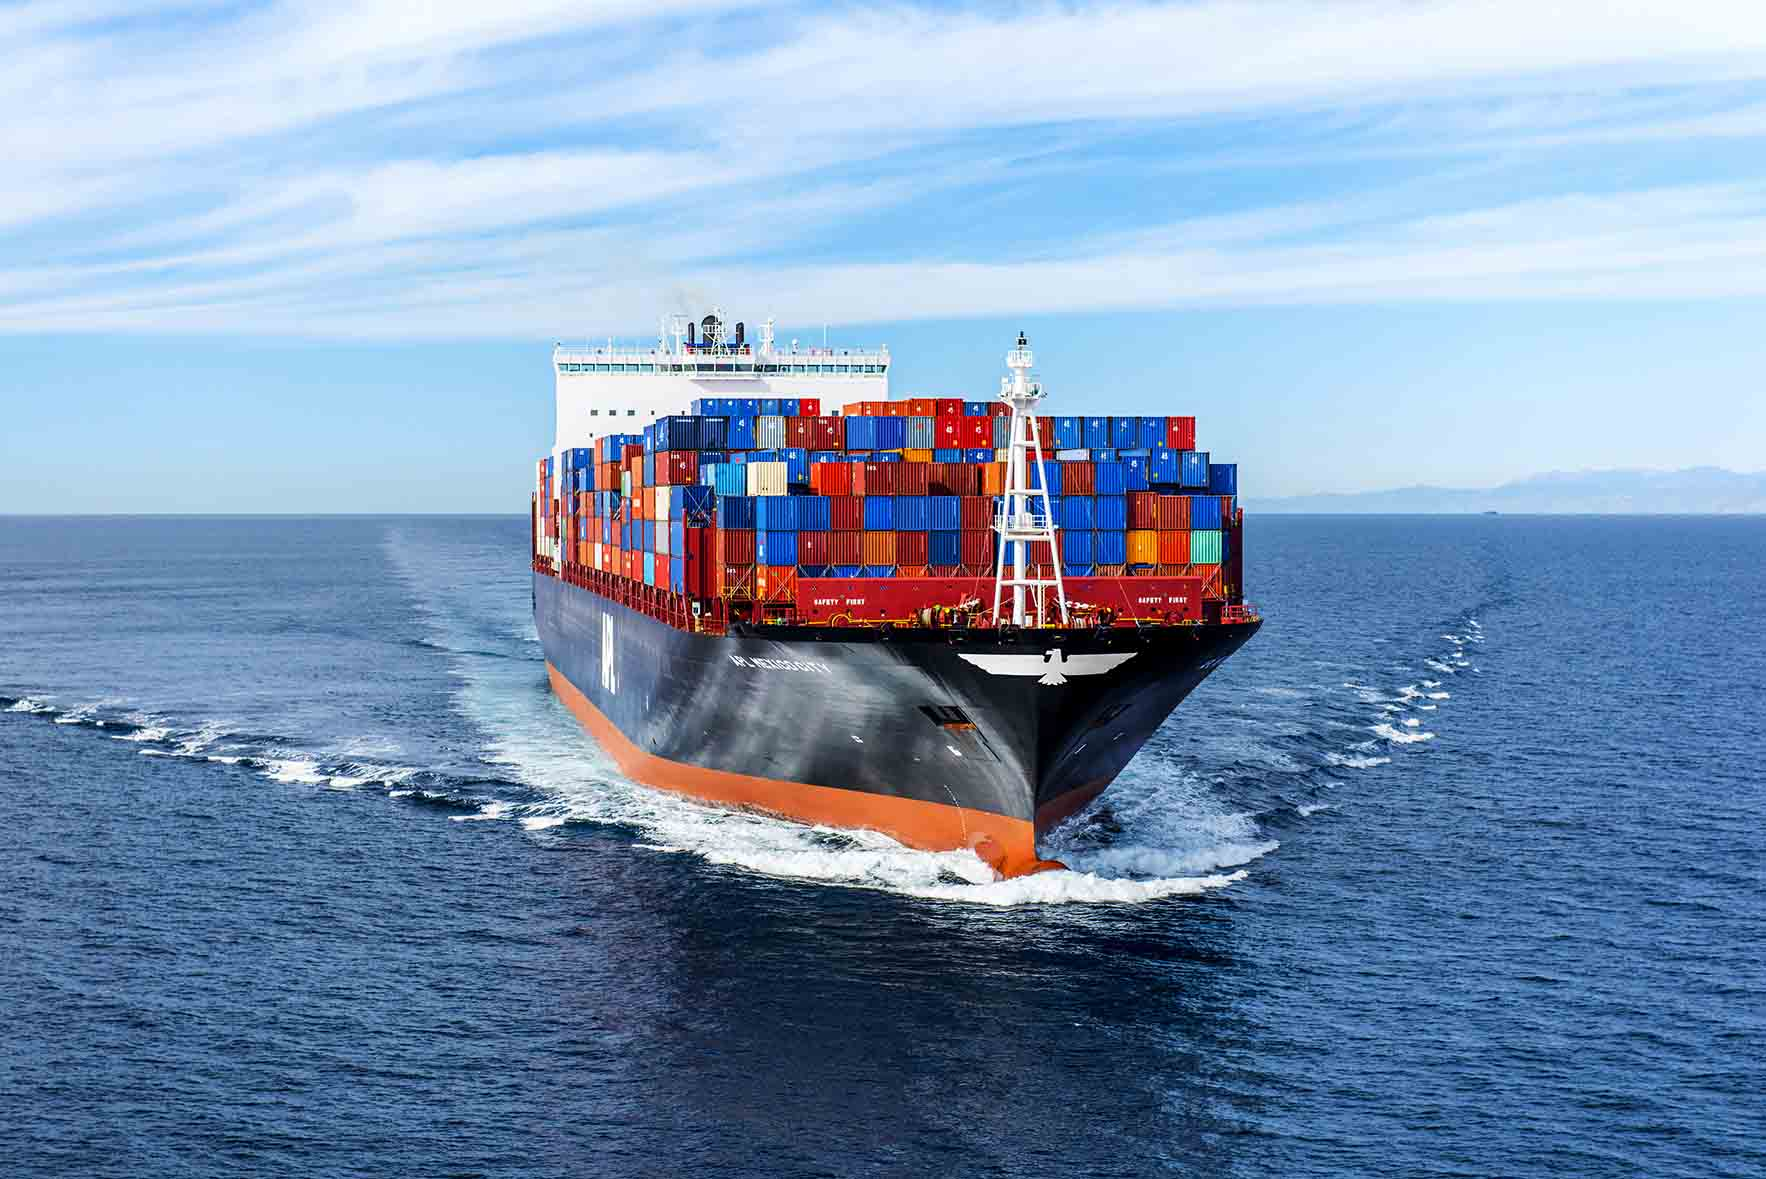 APL Mexico City - 9,000 TEU containership at sea (Los Angeles)